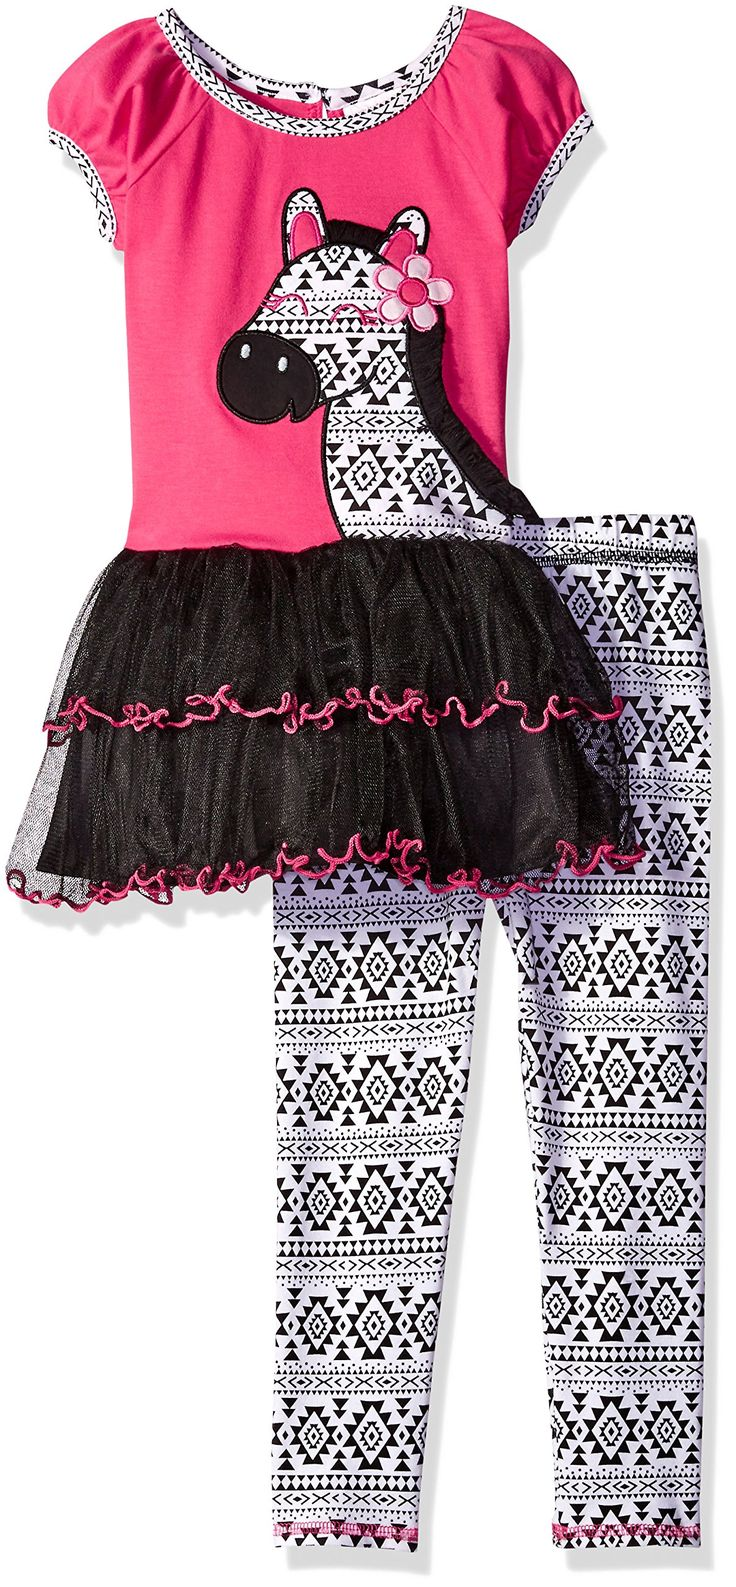 Youngland Little Girls' Tiered Zebra Tutu Tunic with Printed Knit Legging, Pink/Black/White, 2. Zebra applique with flower detail on bodice. Two tiers of mesh with print purl edge finish on skirt. Skirt is fully lined with crinoline attached. Functional center back button at nape and back ties for closure. Encased elastic around waist of legging.